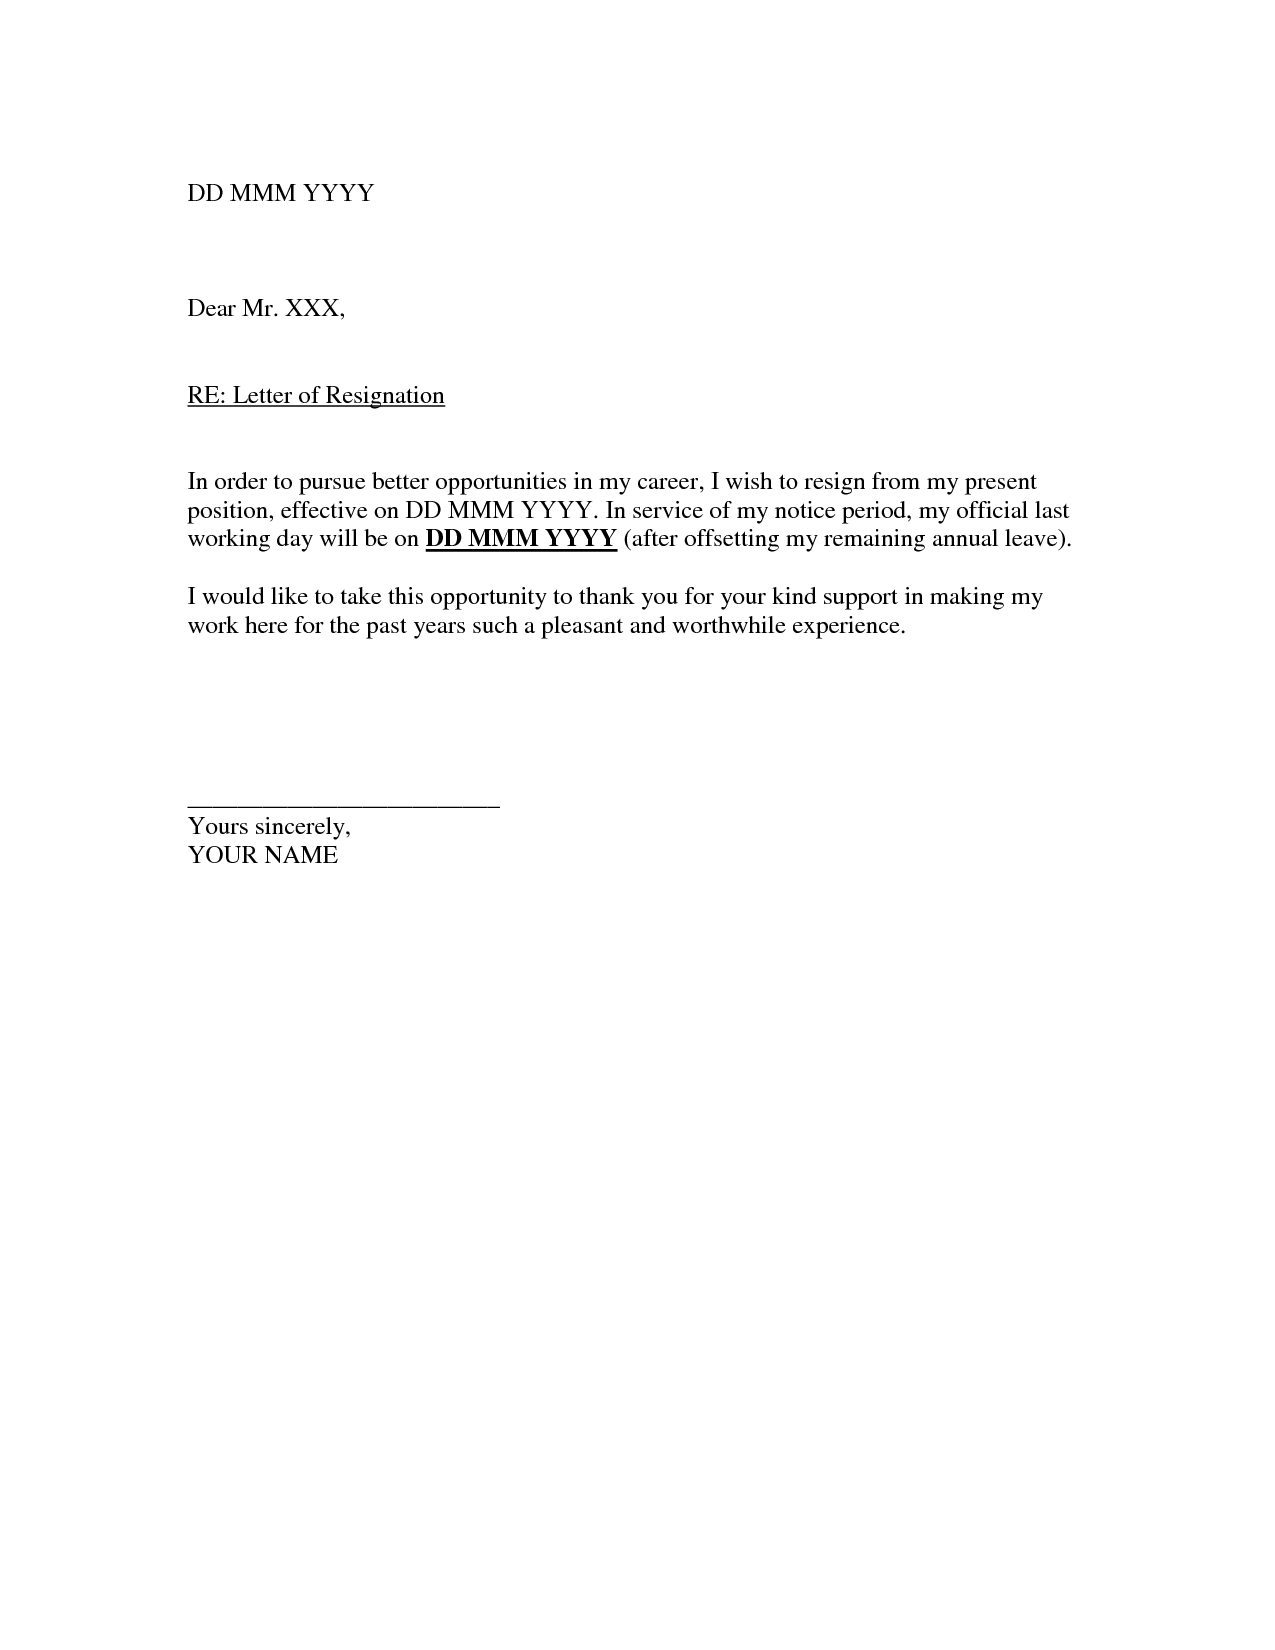 related to resignation letter template letters of resignation related to resignation letter template letters of resignation templates formal resignation letter sample resignation letter